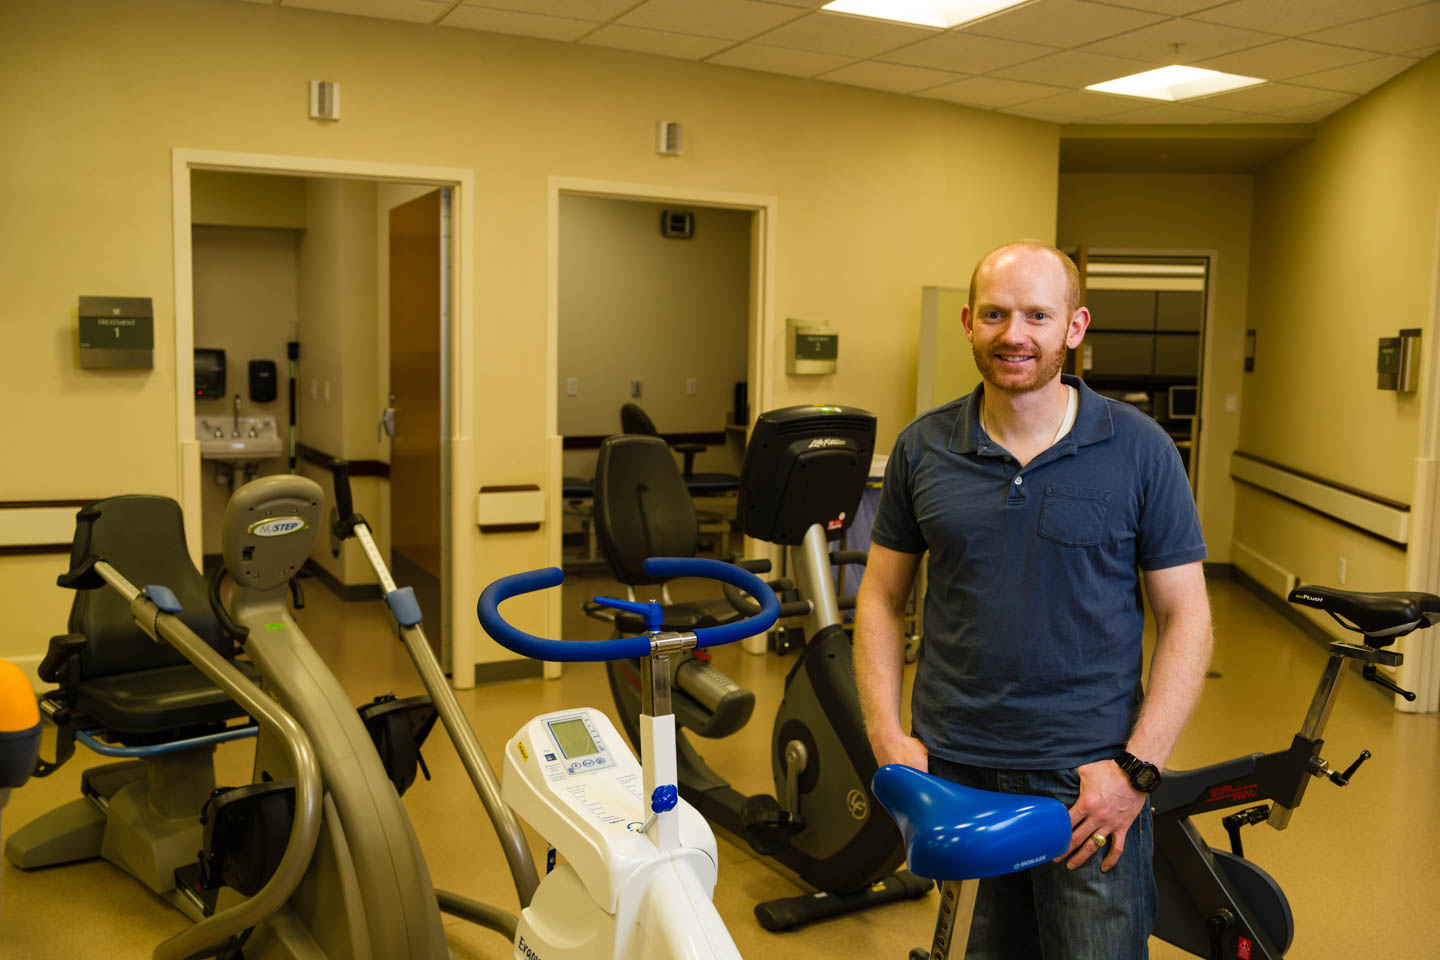 Brandon revisits the physical therapy gym at the Huntsman Cancer Institute